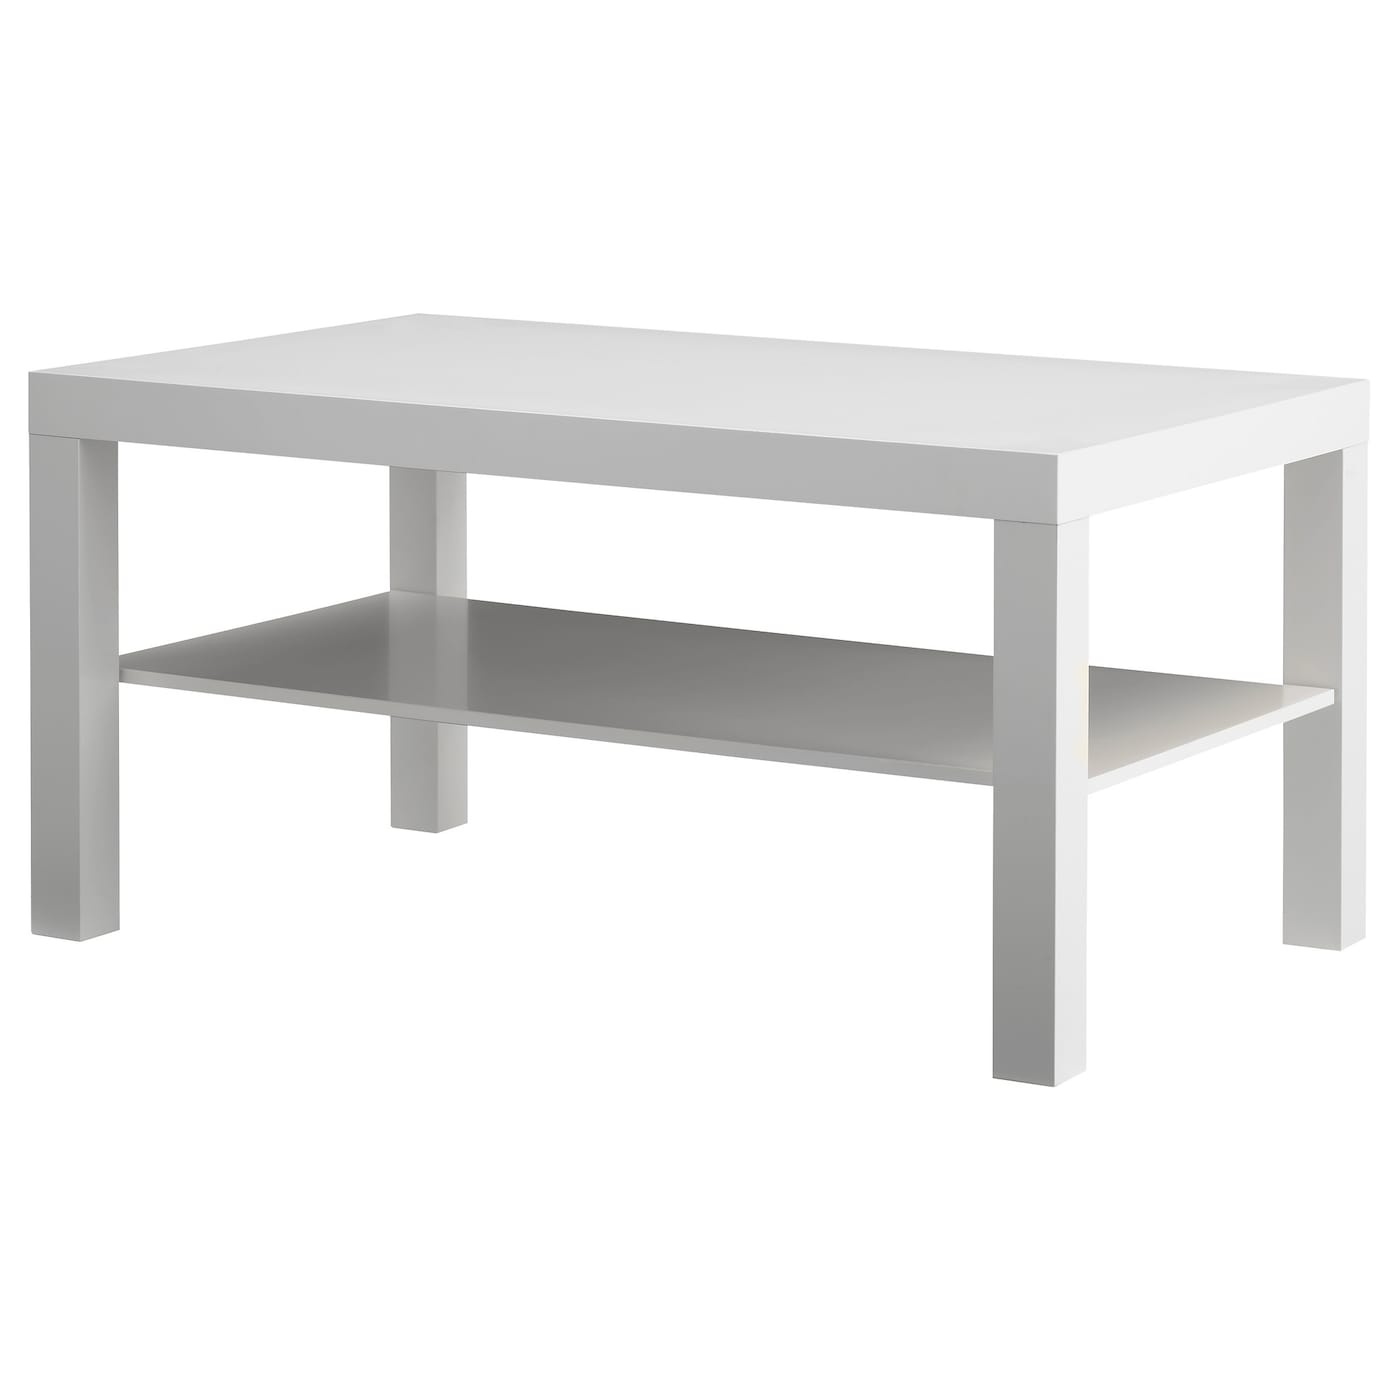 Lack coffee table white 90 x 55 cm ikea for Ikea end tables salon